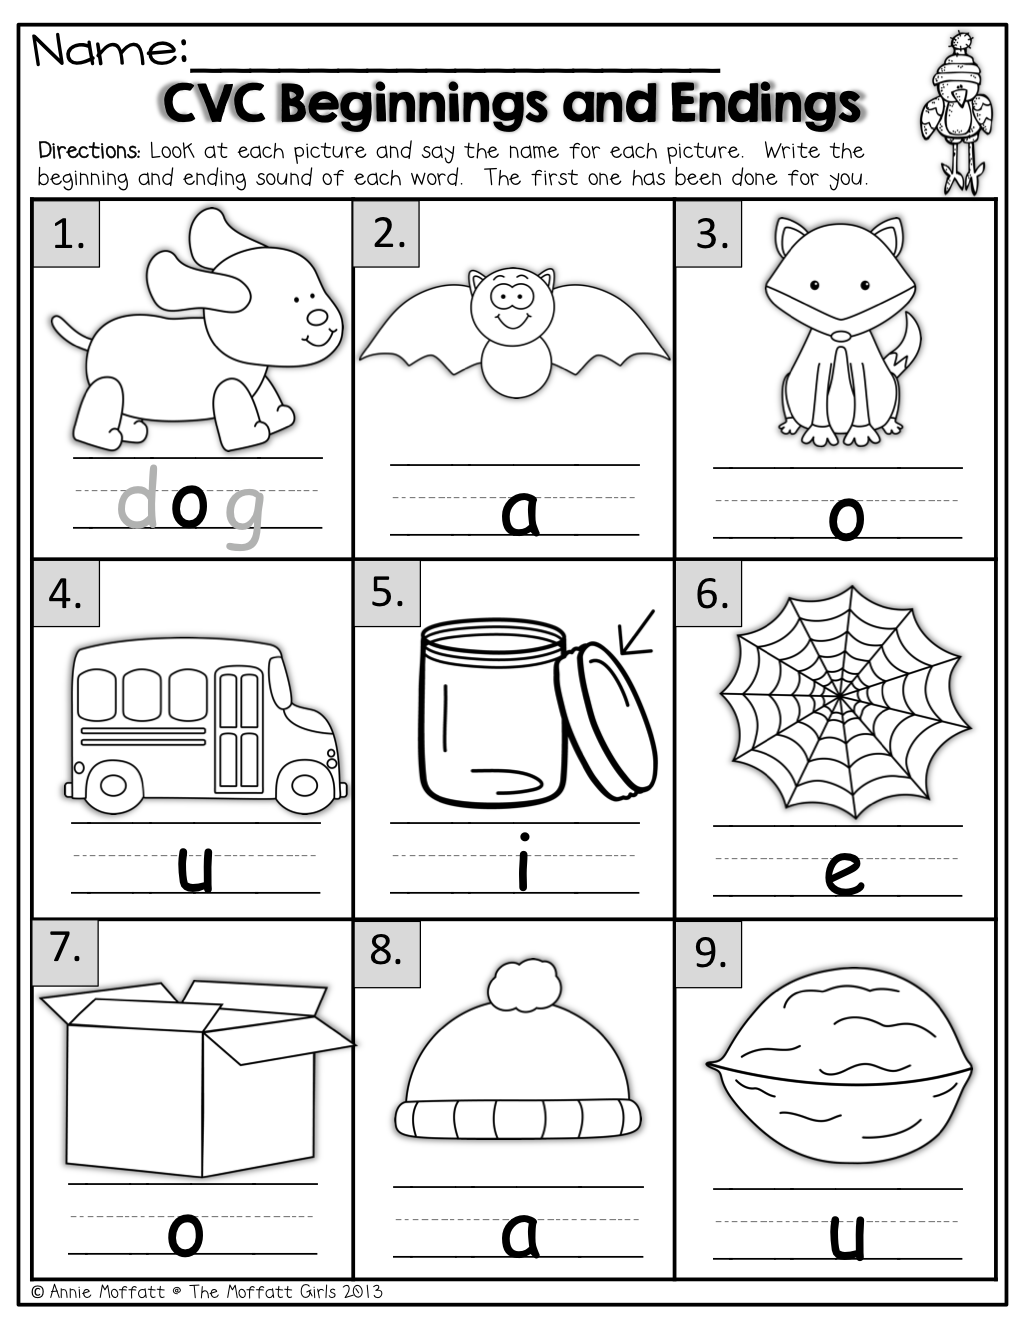 Beginning And Ending Sounds Worksheets For Kindergarten